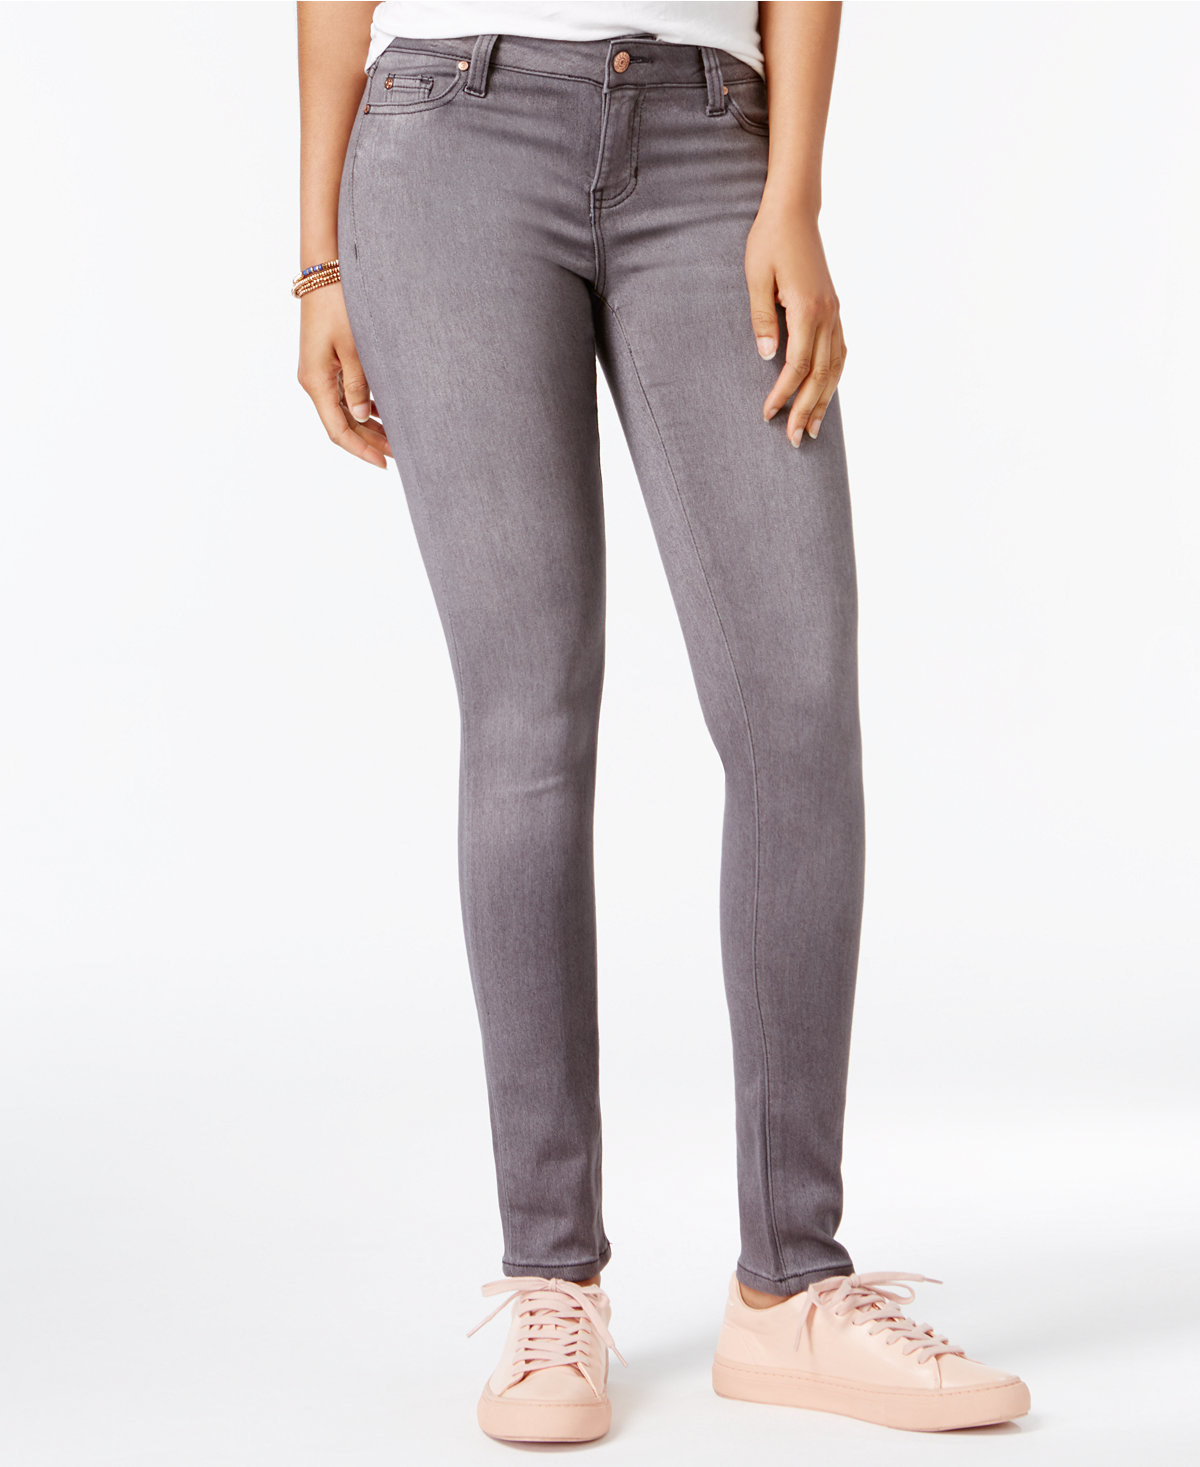 b73f7b4a9e4 Celebrity Pink jeans are incredibly SOFT. Yes, jeans can be SOFT, and they  exist in the form of Celebrity Pink. Game changer, huh?